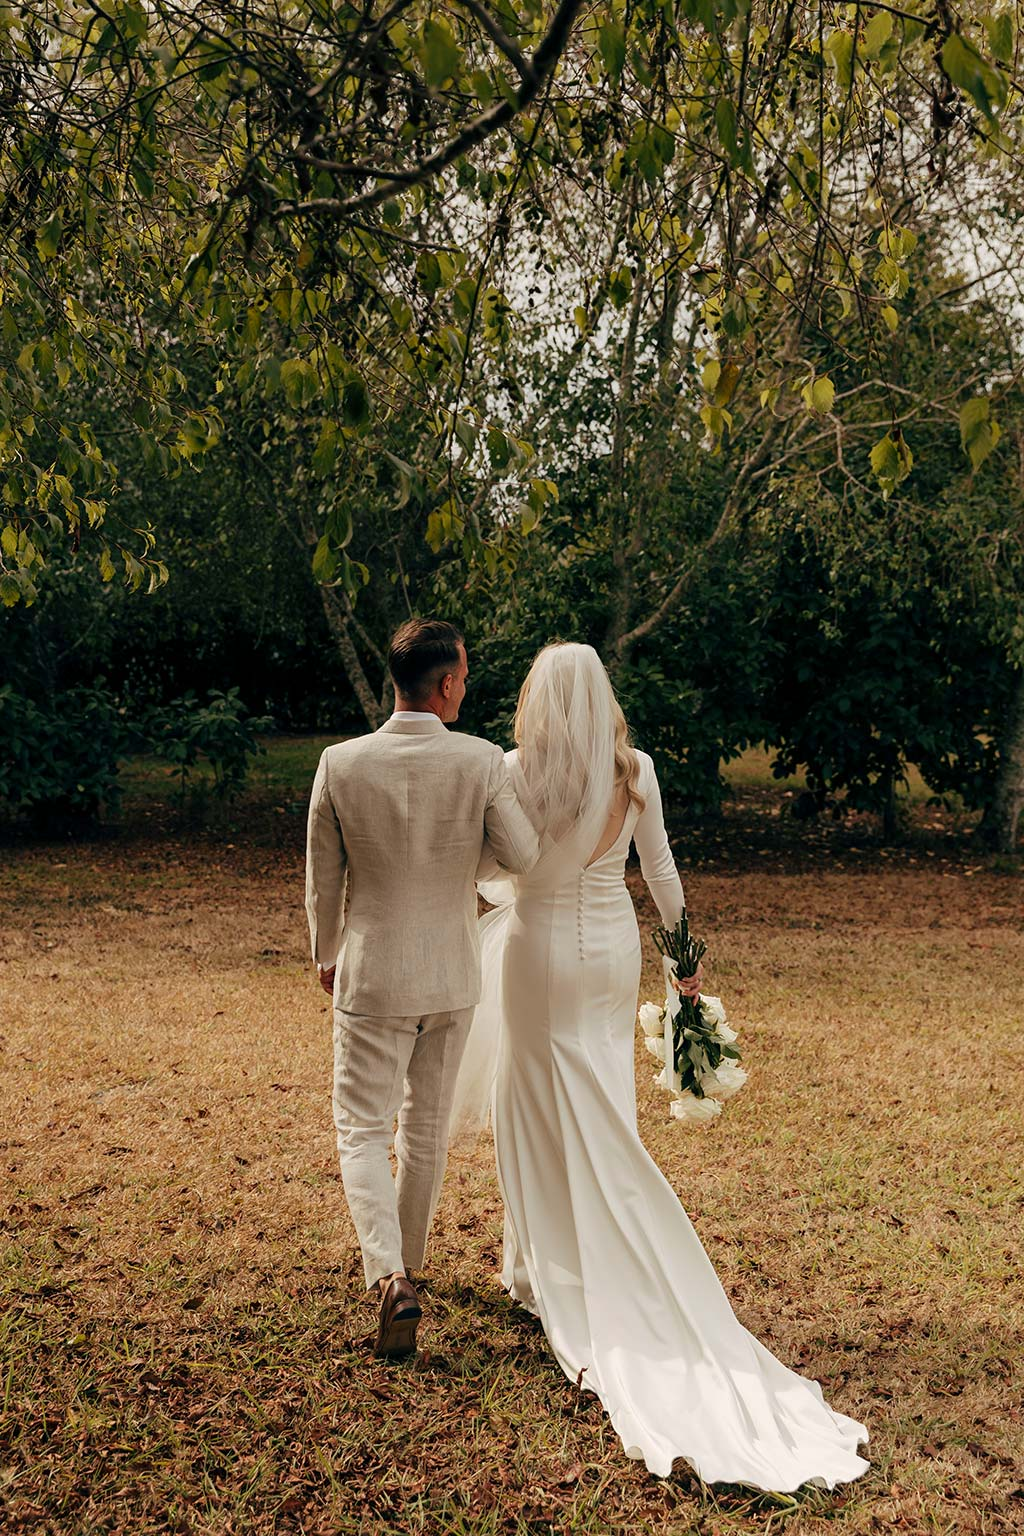 Vinka Design Bridal Wear features Real Wedding Matt and Emilia - bride and groom walk away, bride wearing bespoke Audrey gown from Modern Muse Collection with beautiful long train flowing behind her